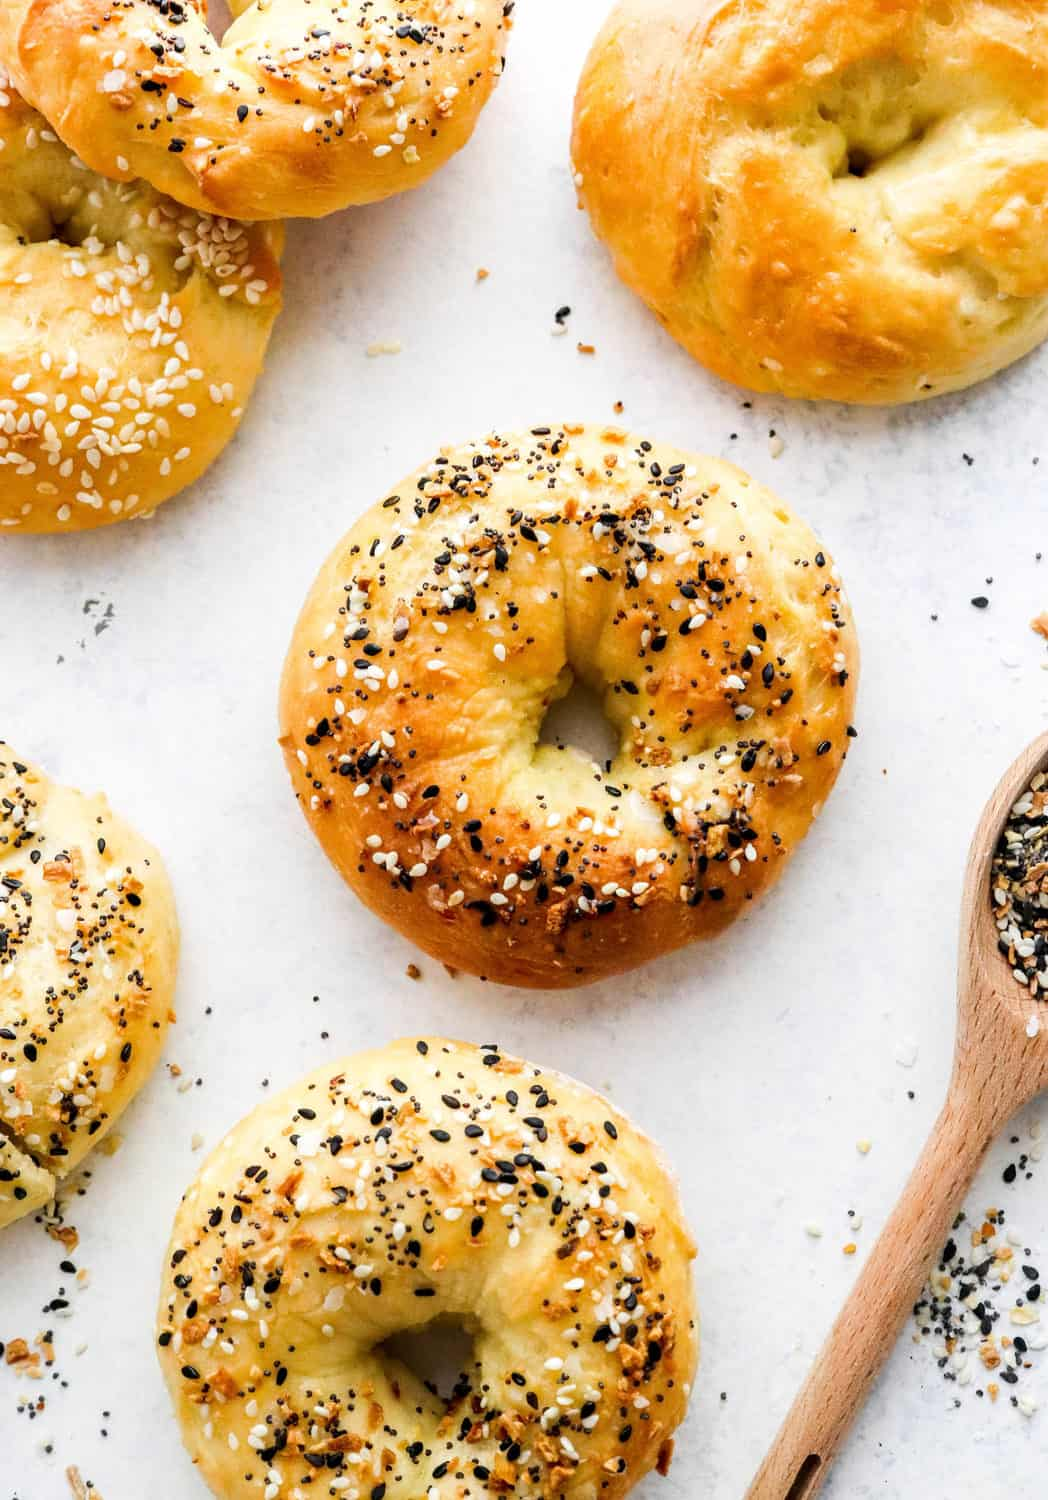 Round air Freyr bagel on a white surface surrounded by more bagels with a spoon of seasoning nest to them